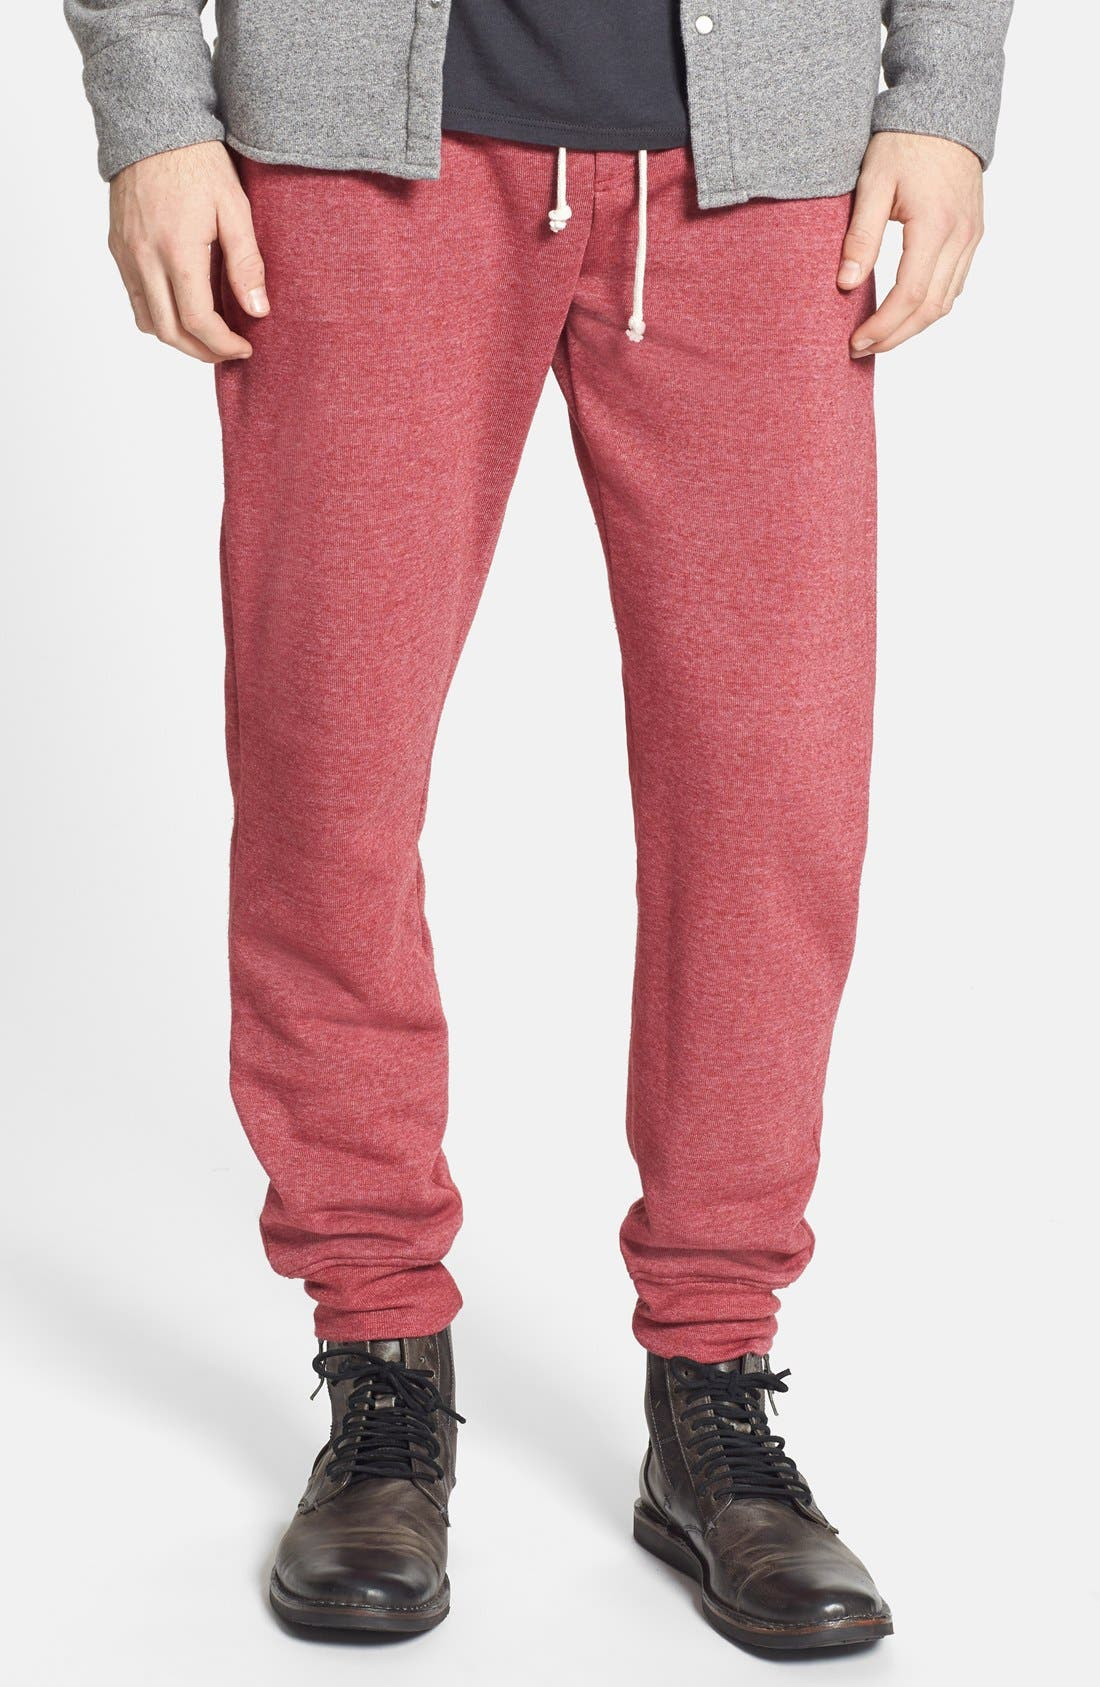 'Dodgeball' Eco Fleece Sweatpants,                             Main thumbnail 6, color,